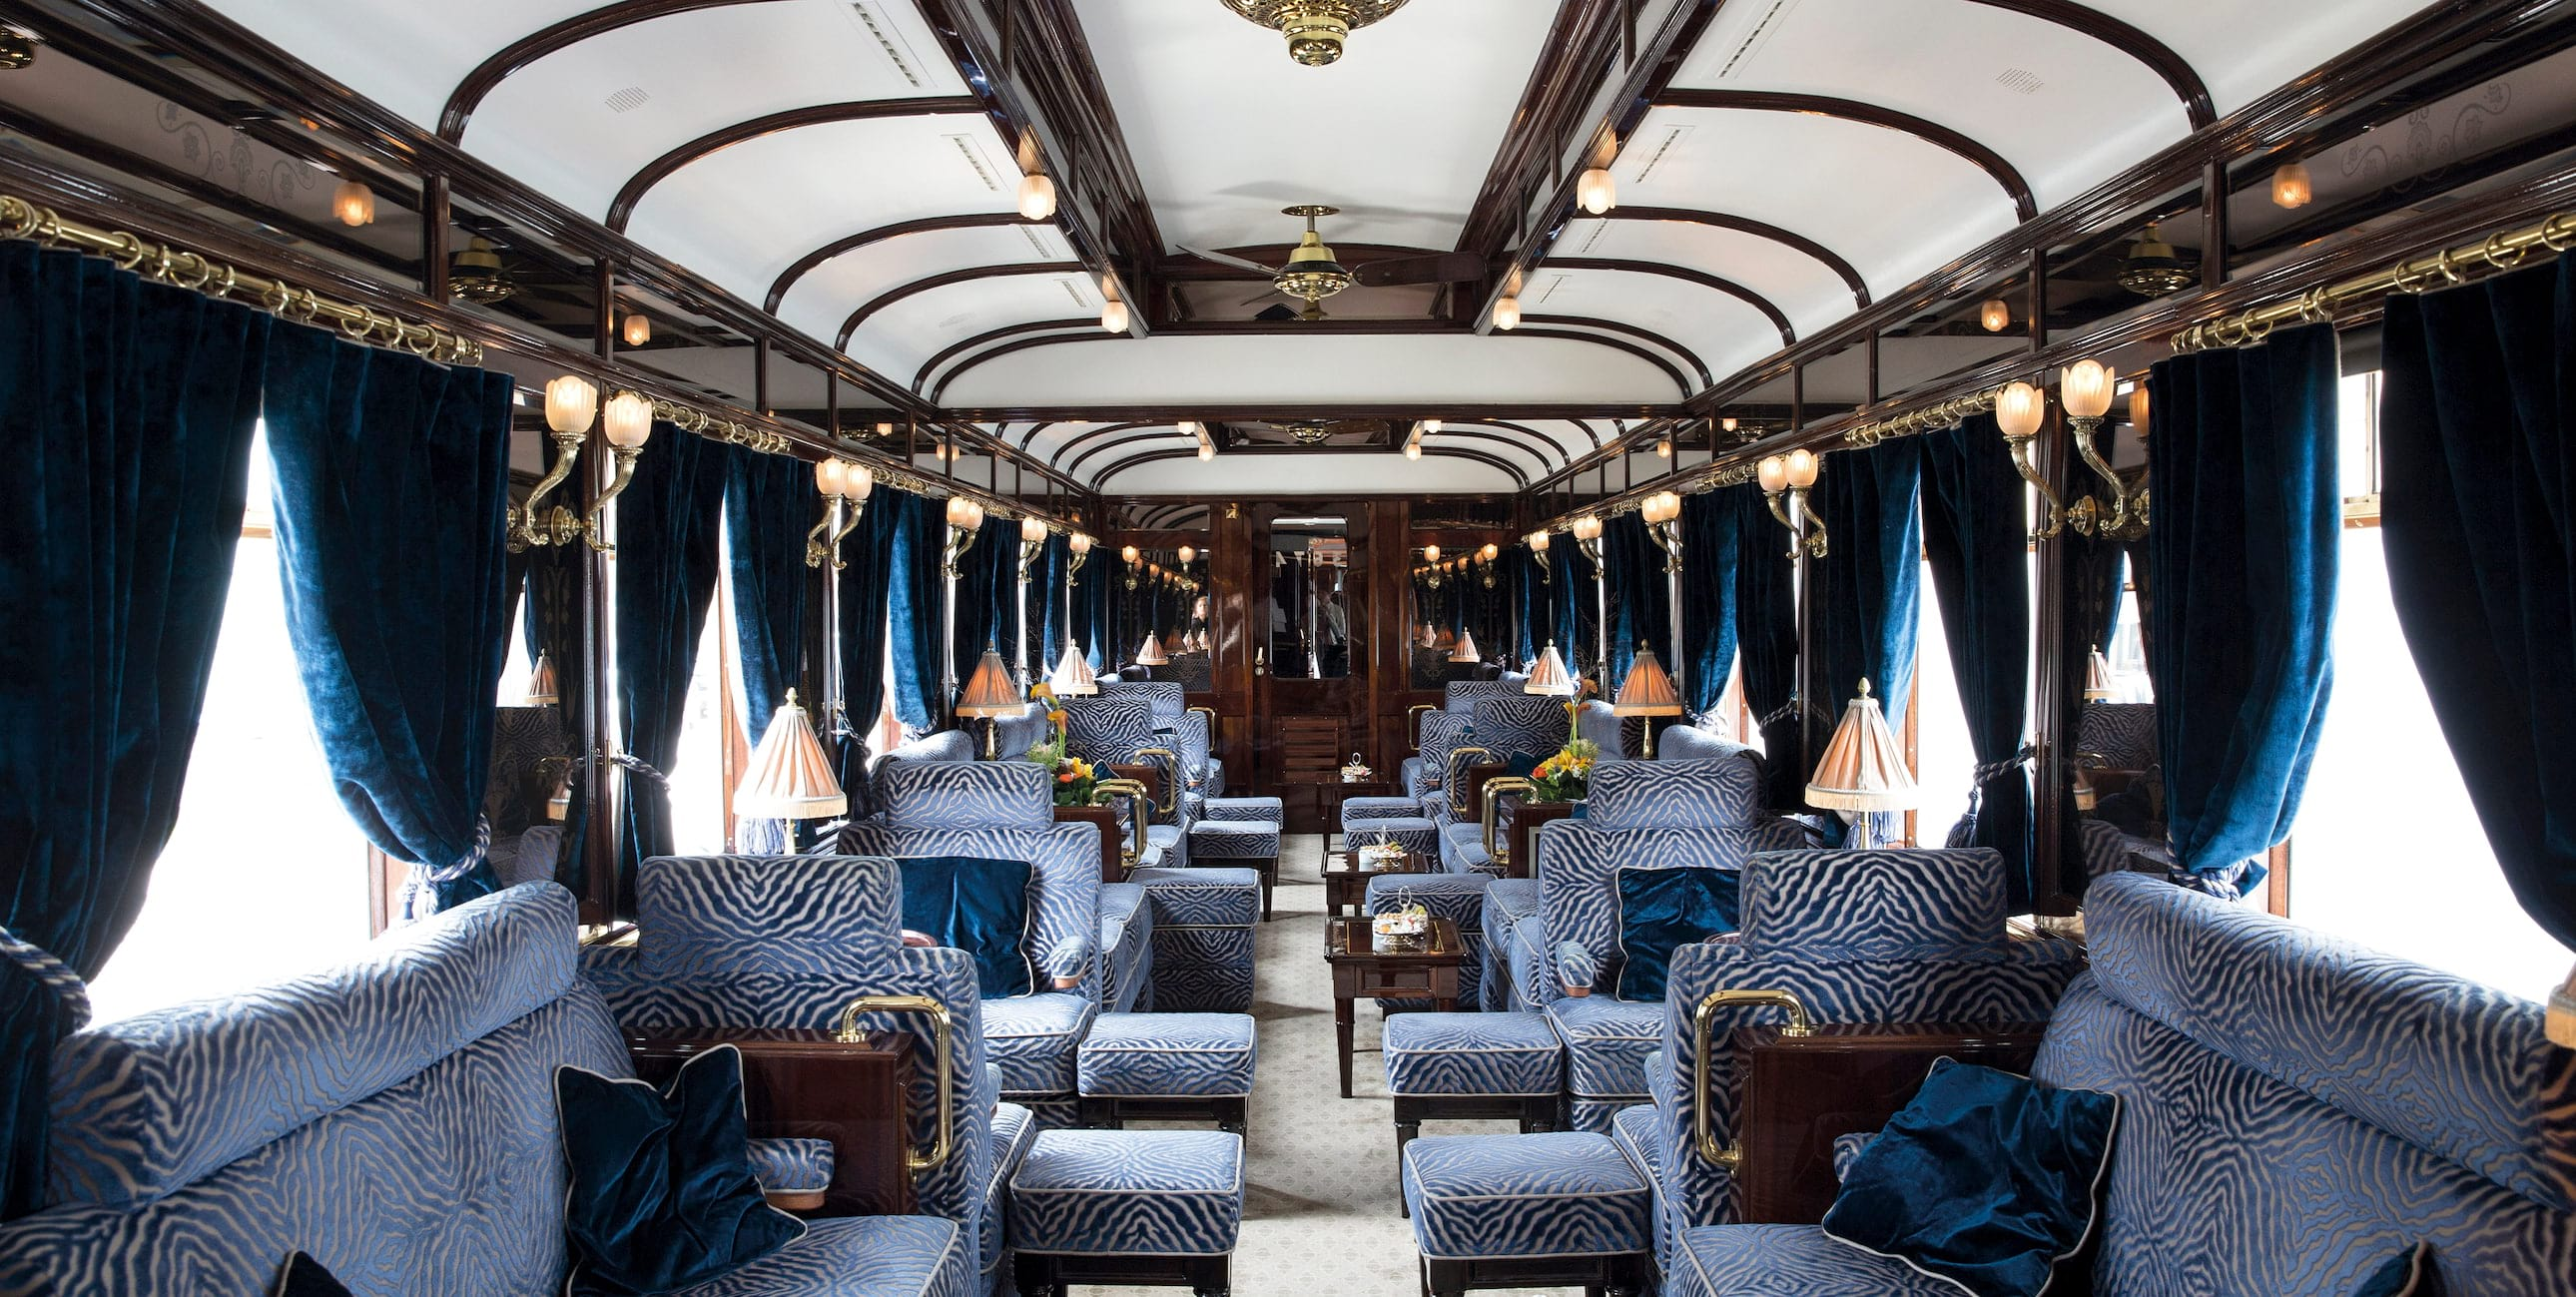 belmond trains luxury train journeys. Black Bedroom Furniture Sets. Home Design Ideas